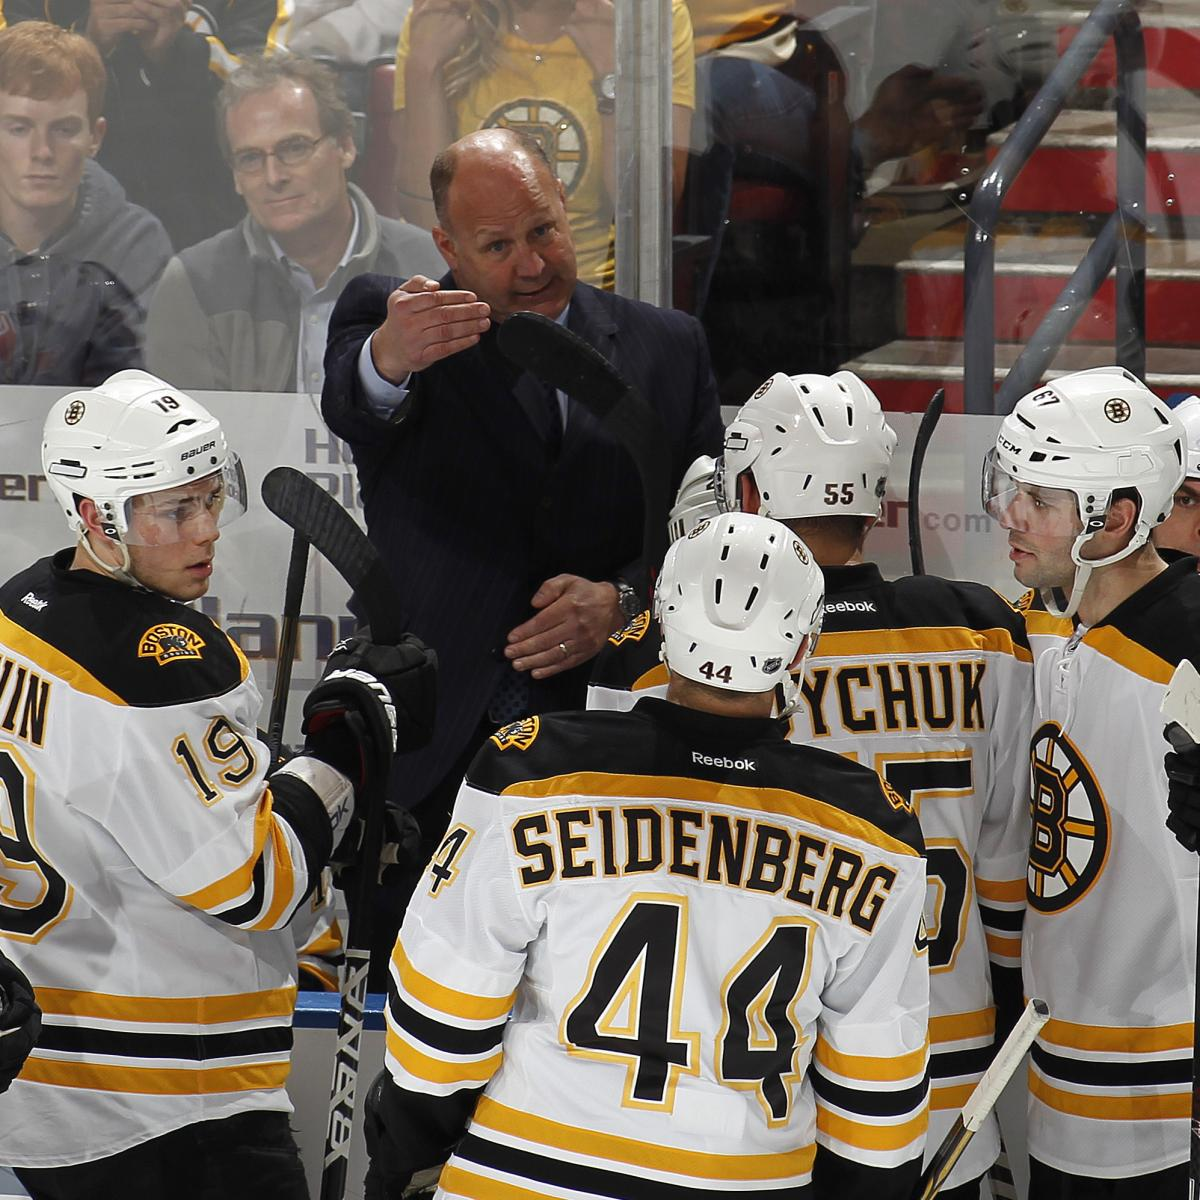 Boston Bruins: If The Team Has Been Mediocre, Just How